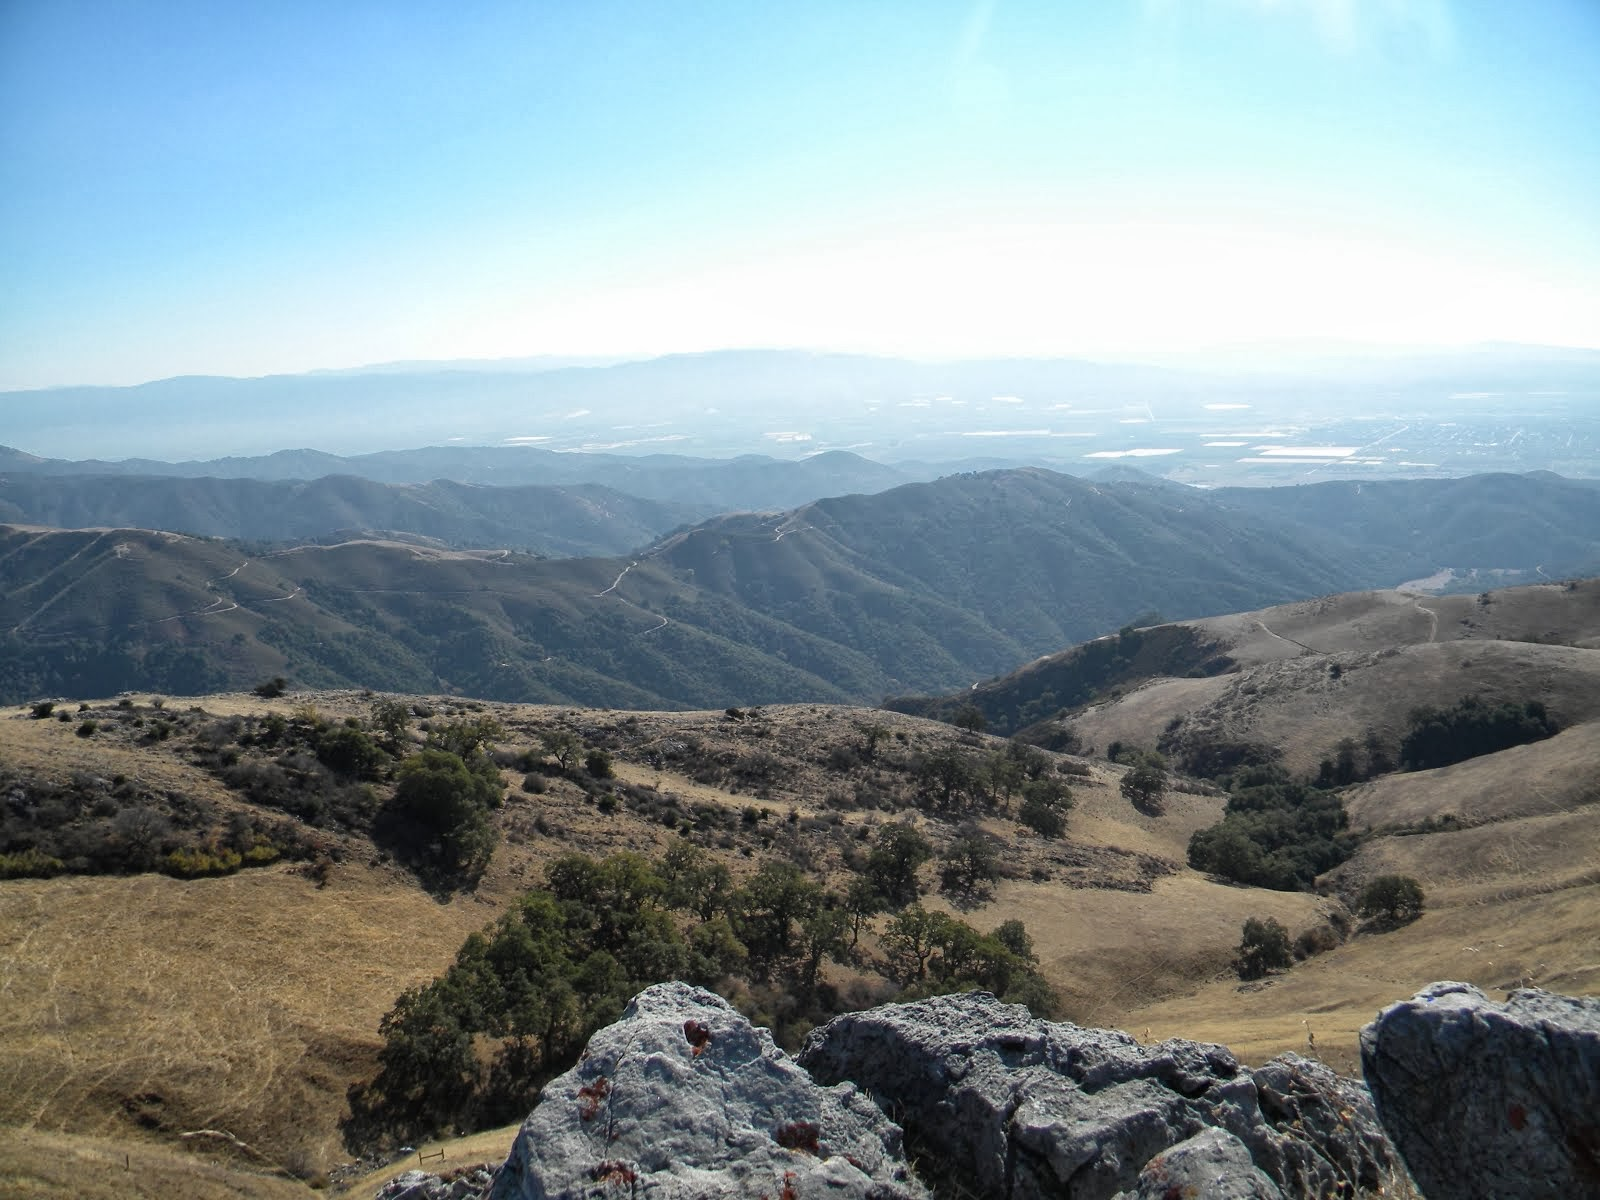 Another Fremont Peak view